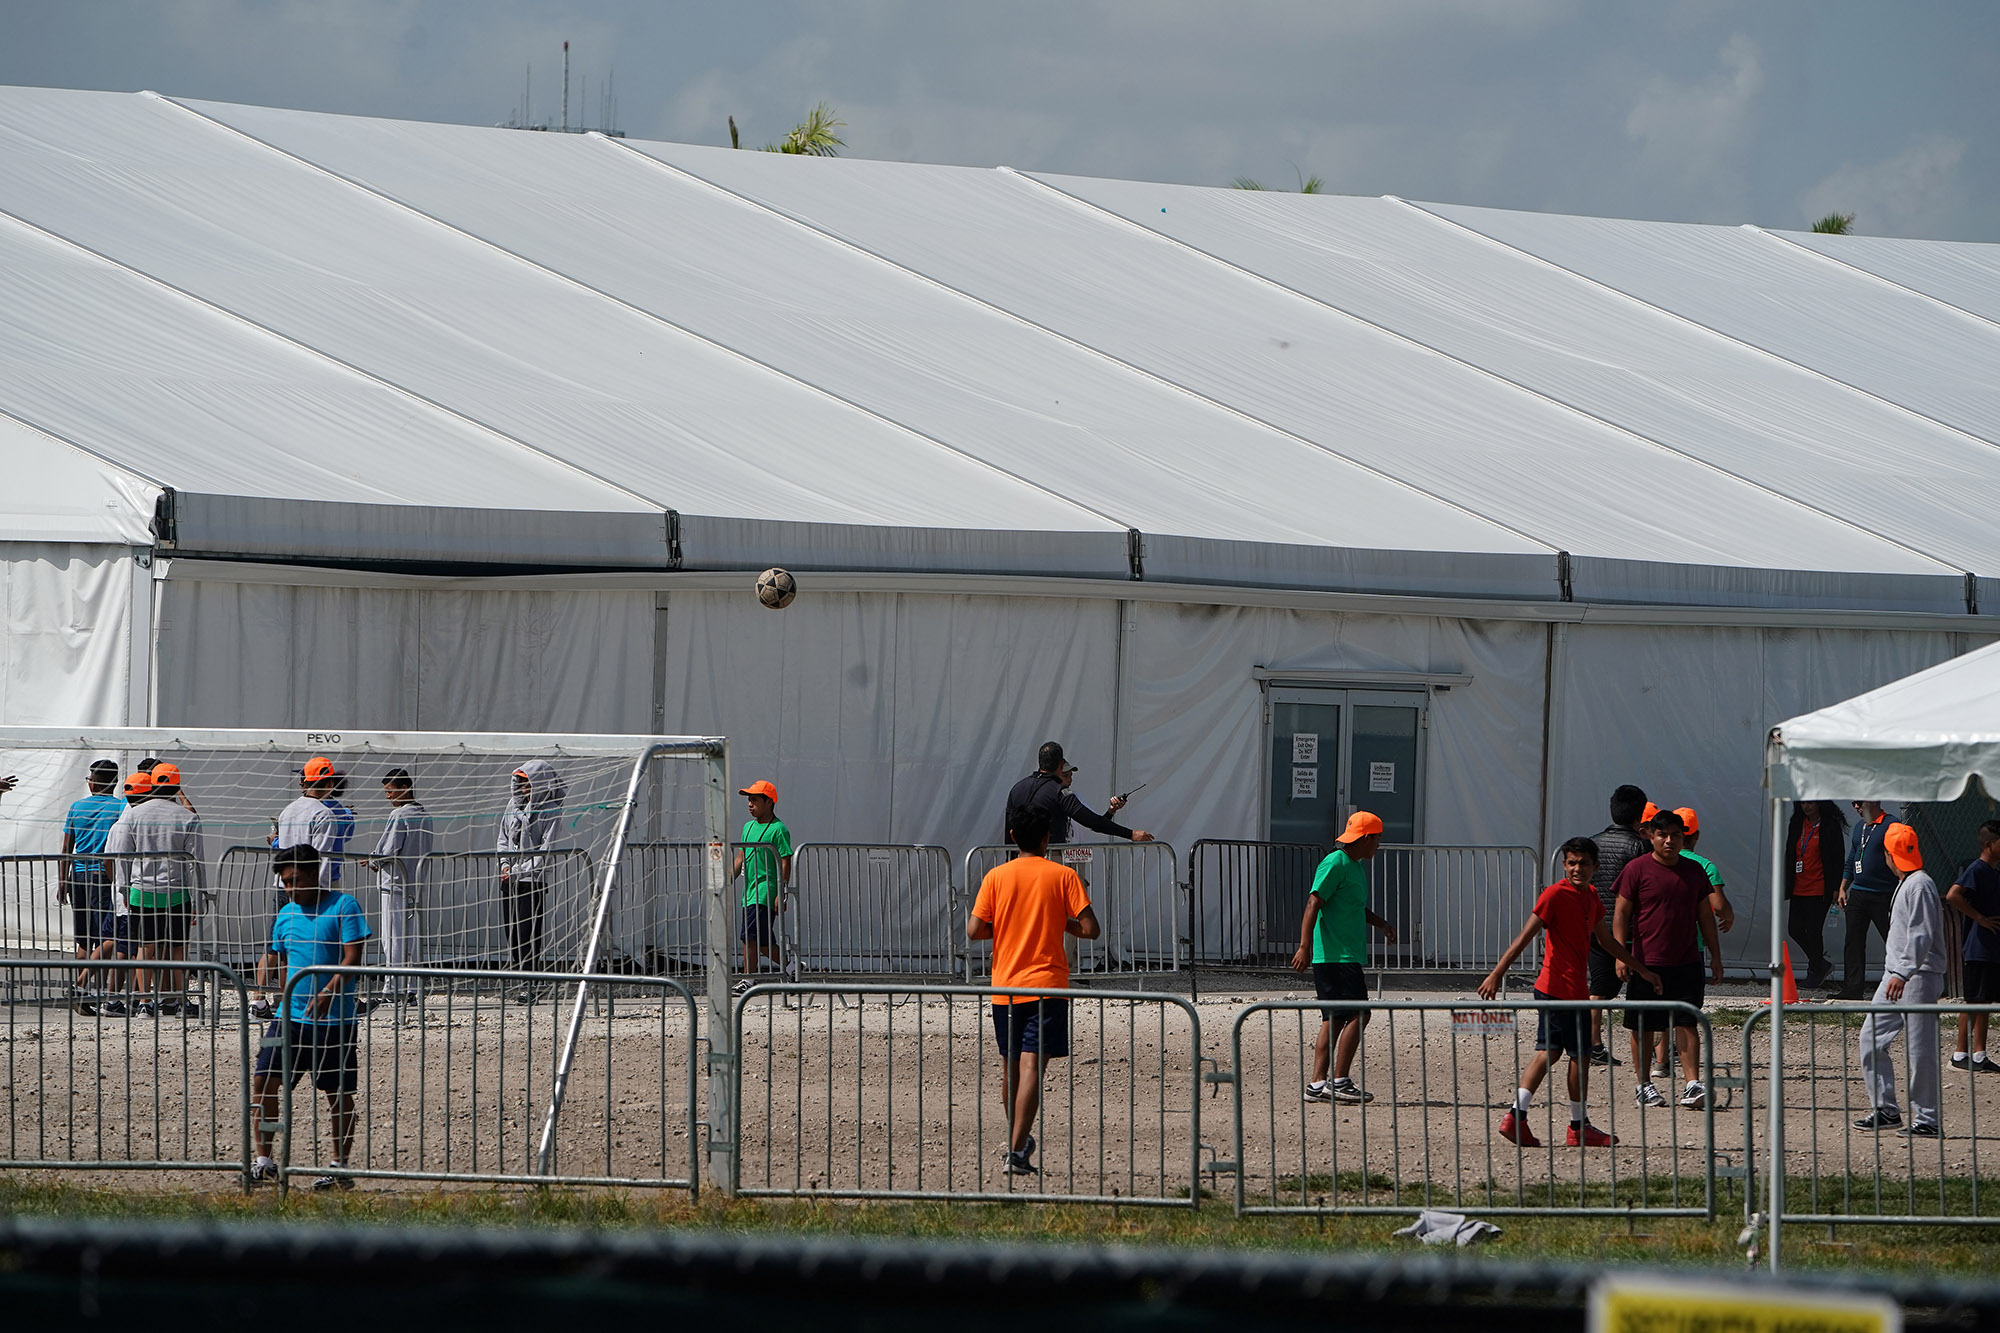 Immigrant families in detention have until Friday to make a difficult decision